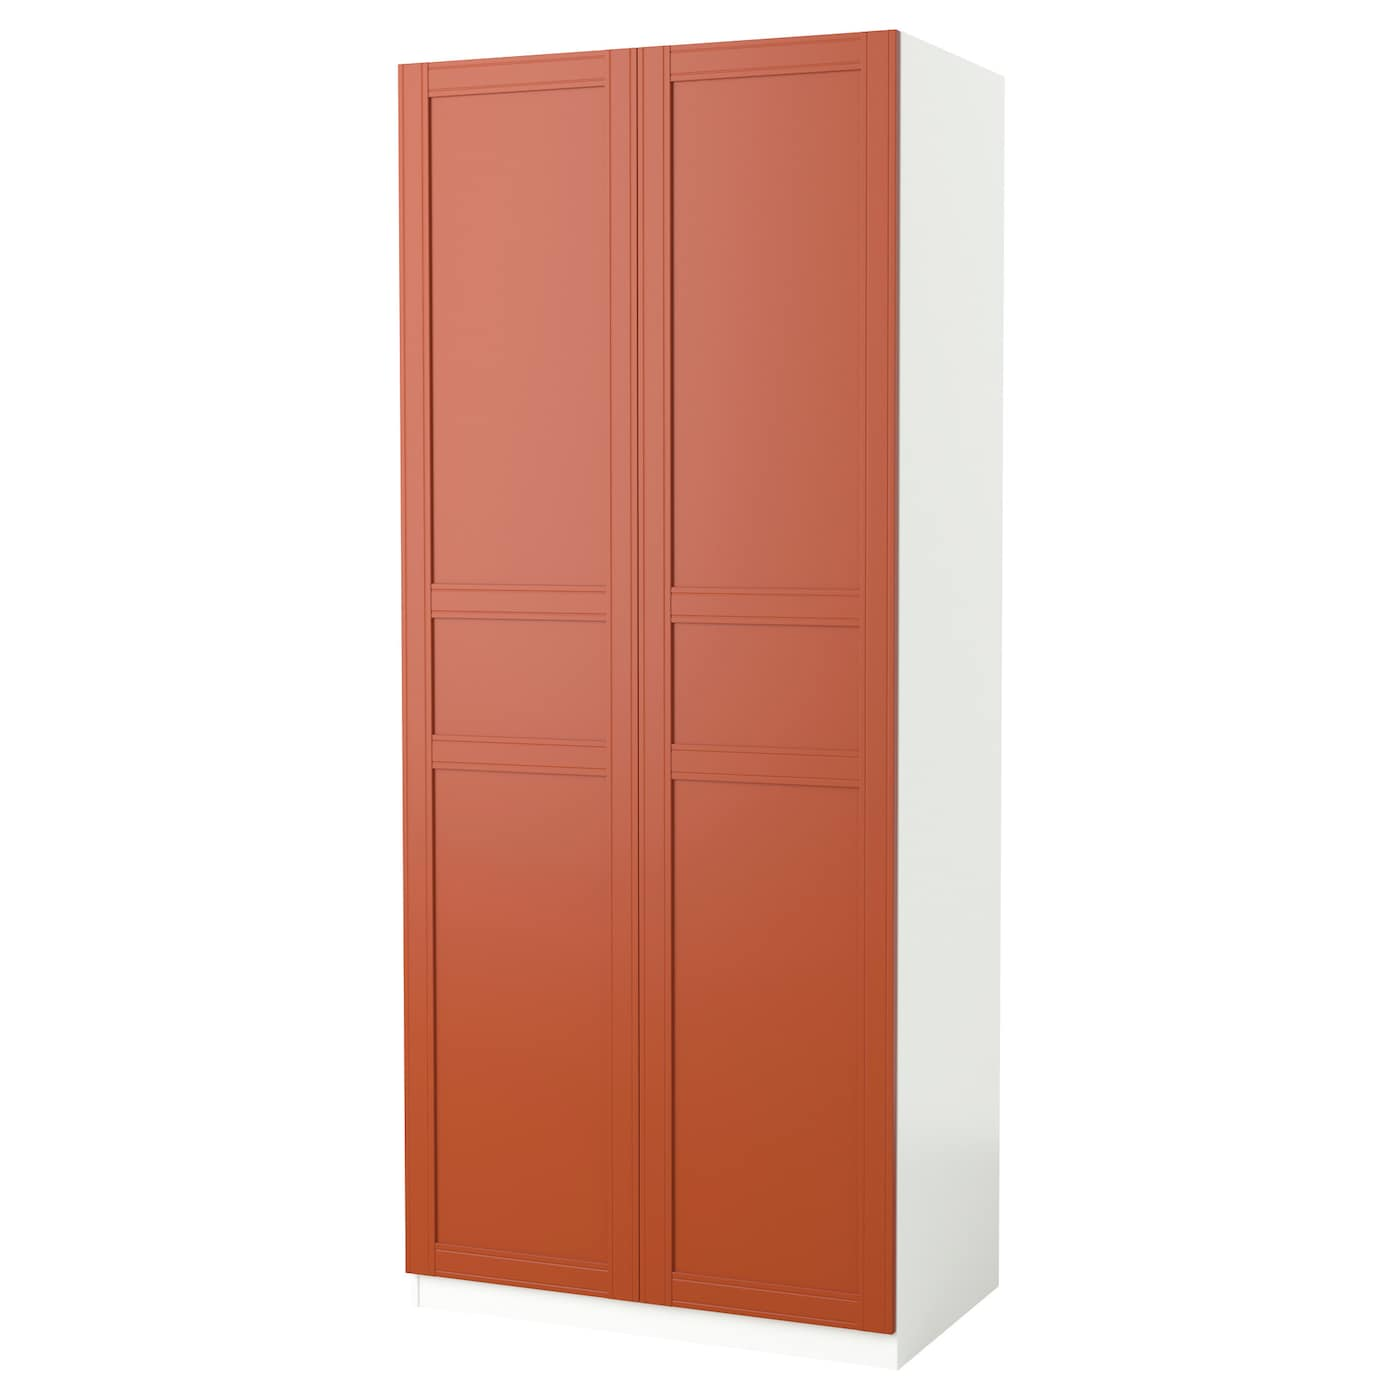 pax wardrobe white flisberget red brown 100x60x236 cm ikea. Black Bedroom Furniture Sets. Home Design Ideas